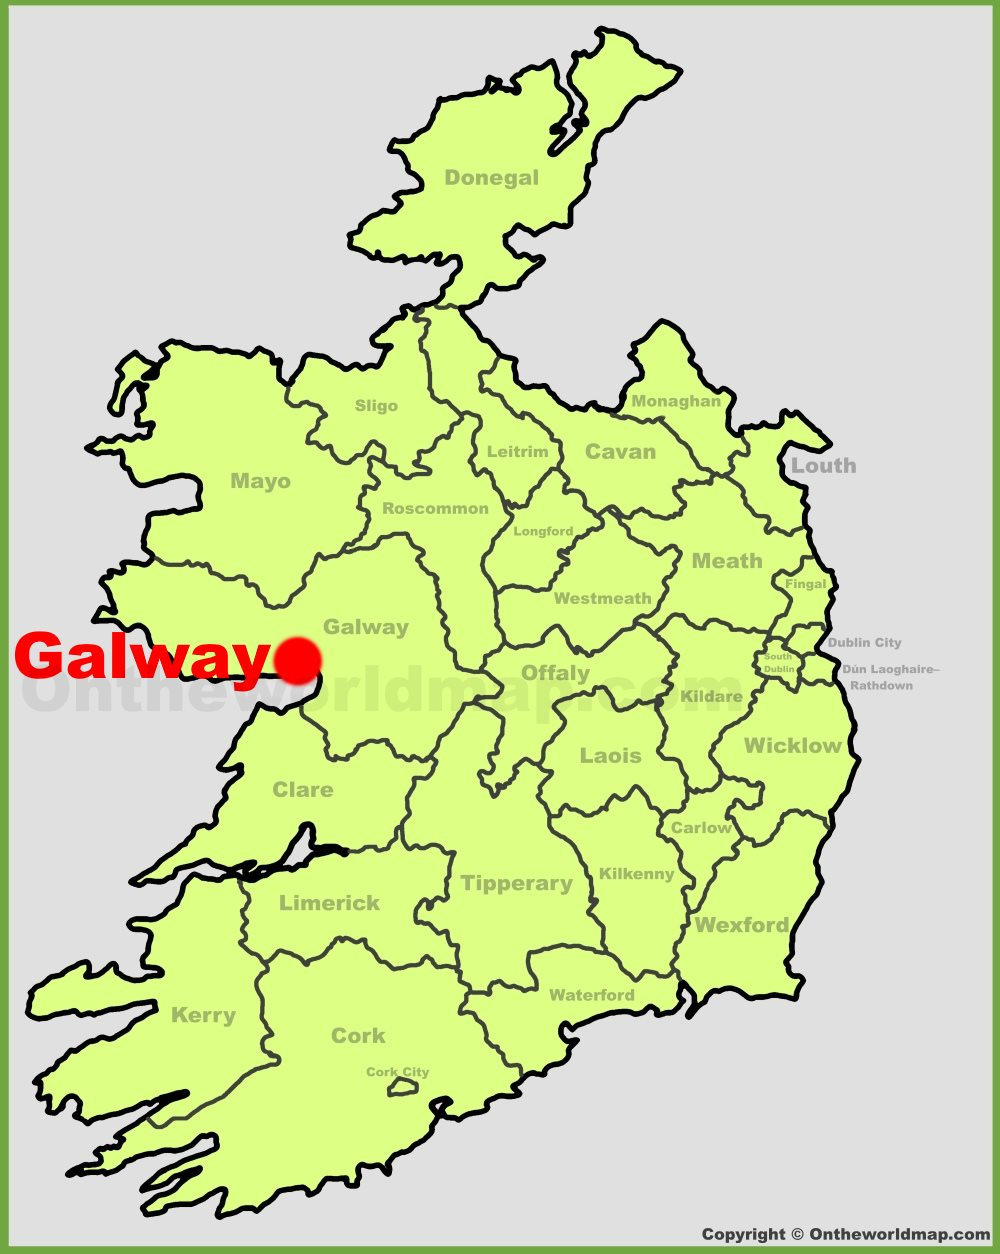 Galway On Map Of Ireland.Galway Location On The Ireland Map